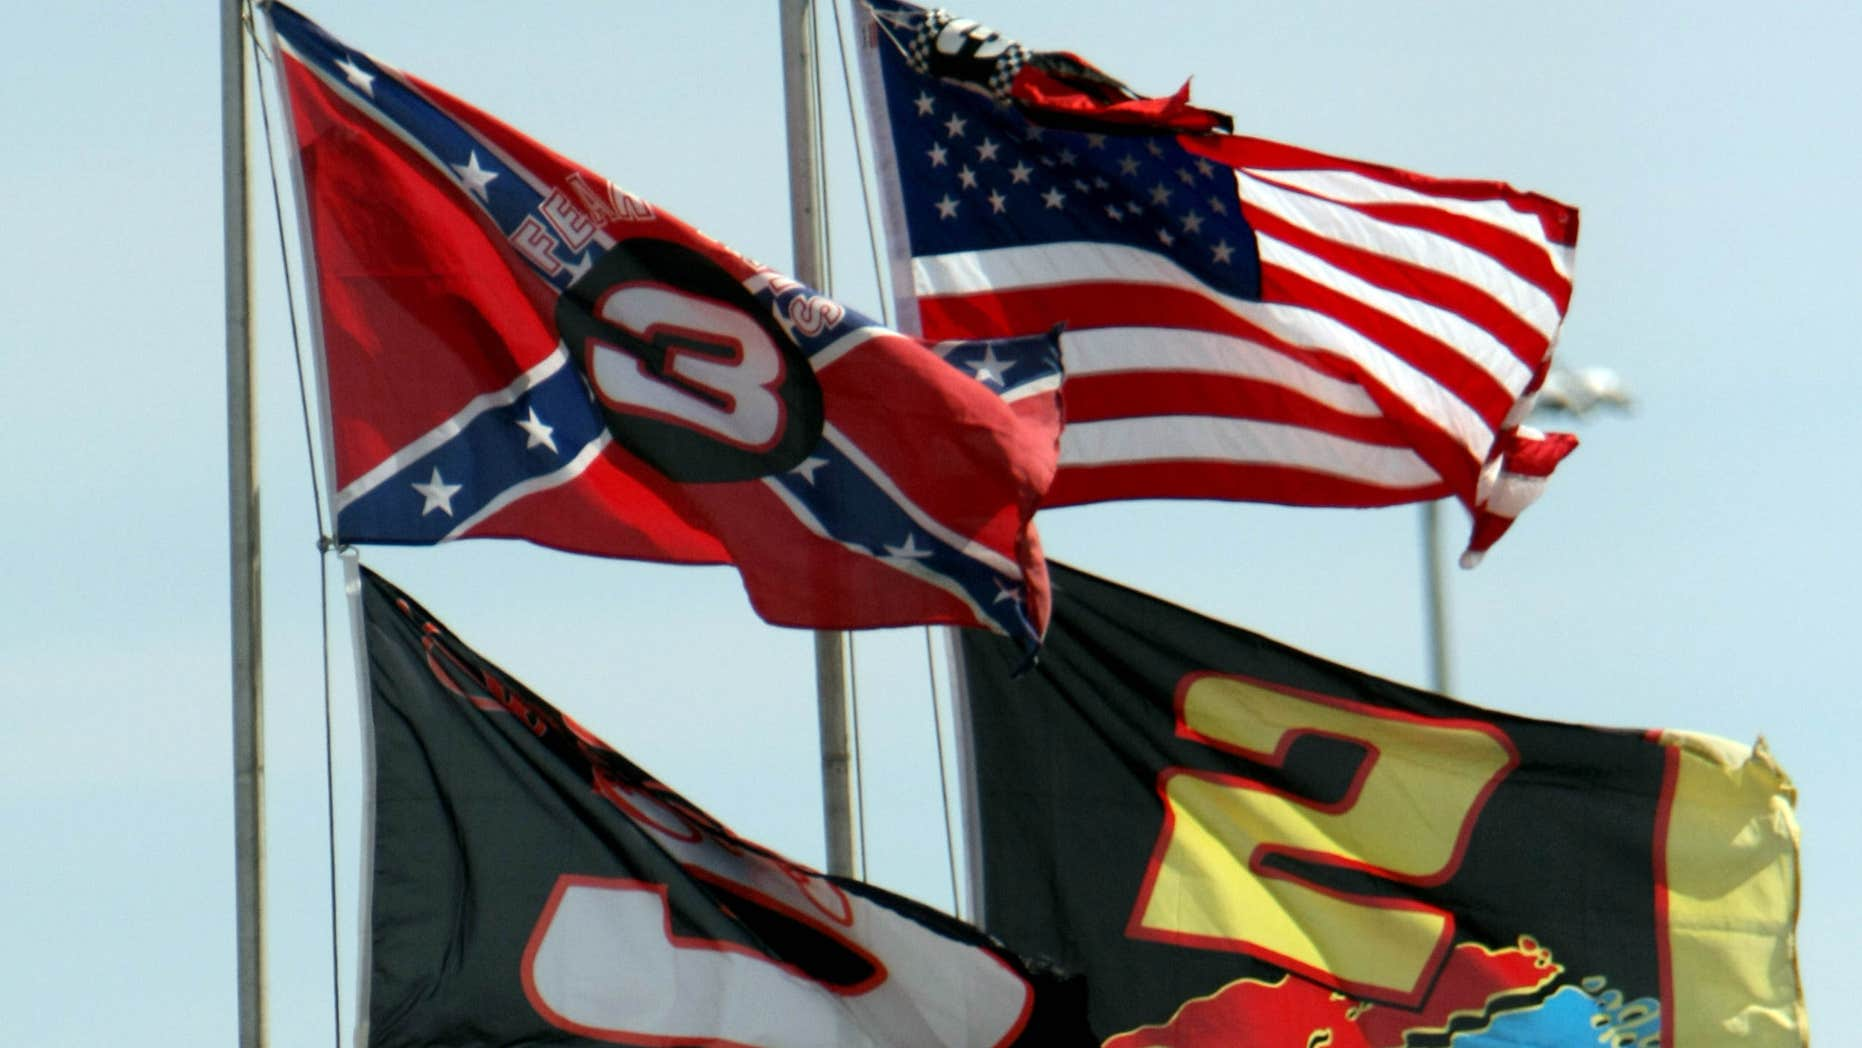 Feb. 15, 2008: Flags, including a Confederate flag, fap in the wind during practice for the NASCAR Sprint Cup Series Daytona 500 auto race at Daytona International Speedway in Daytona Beach, Fla.